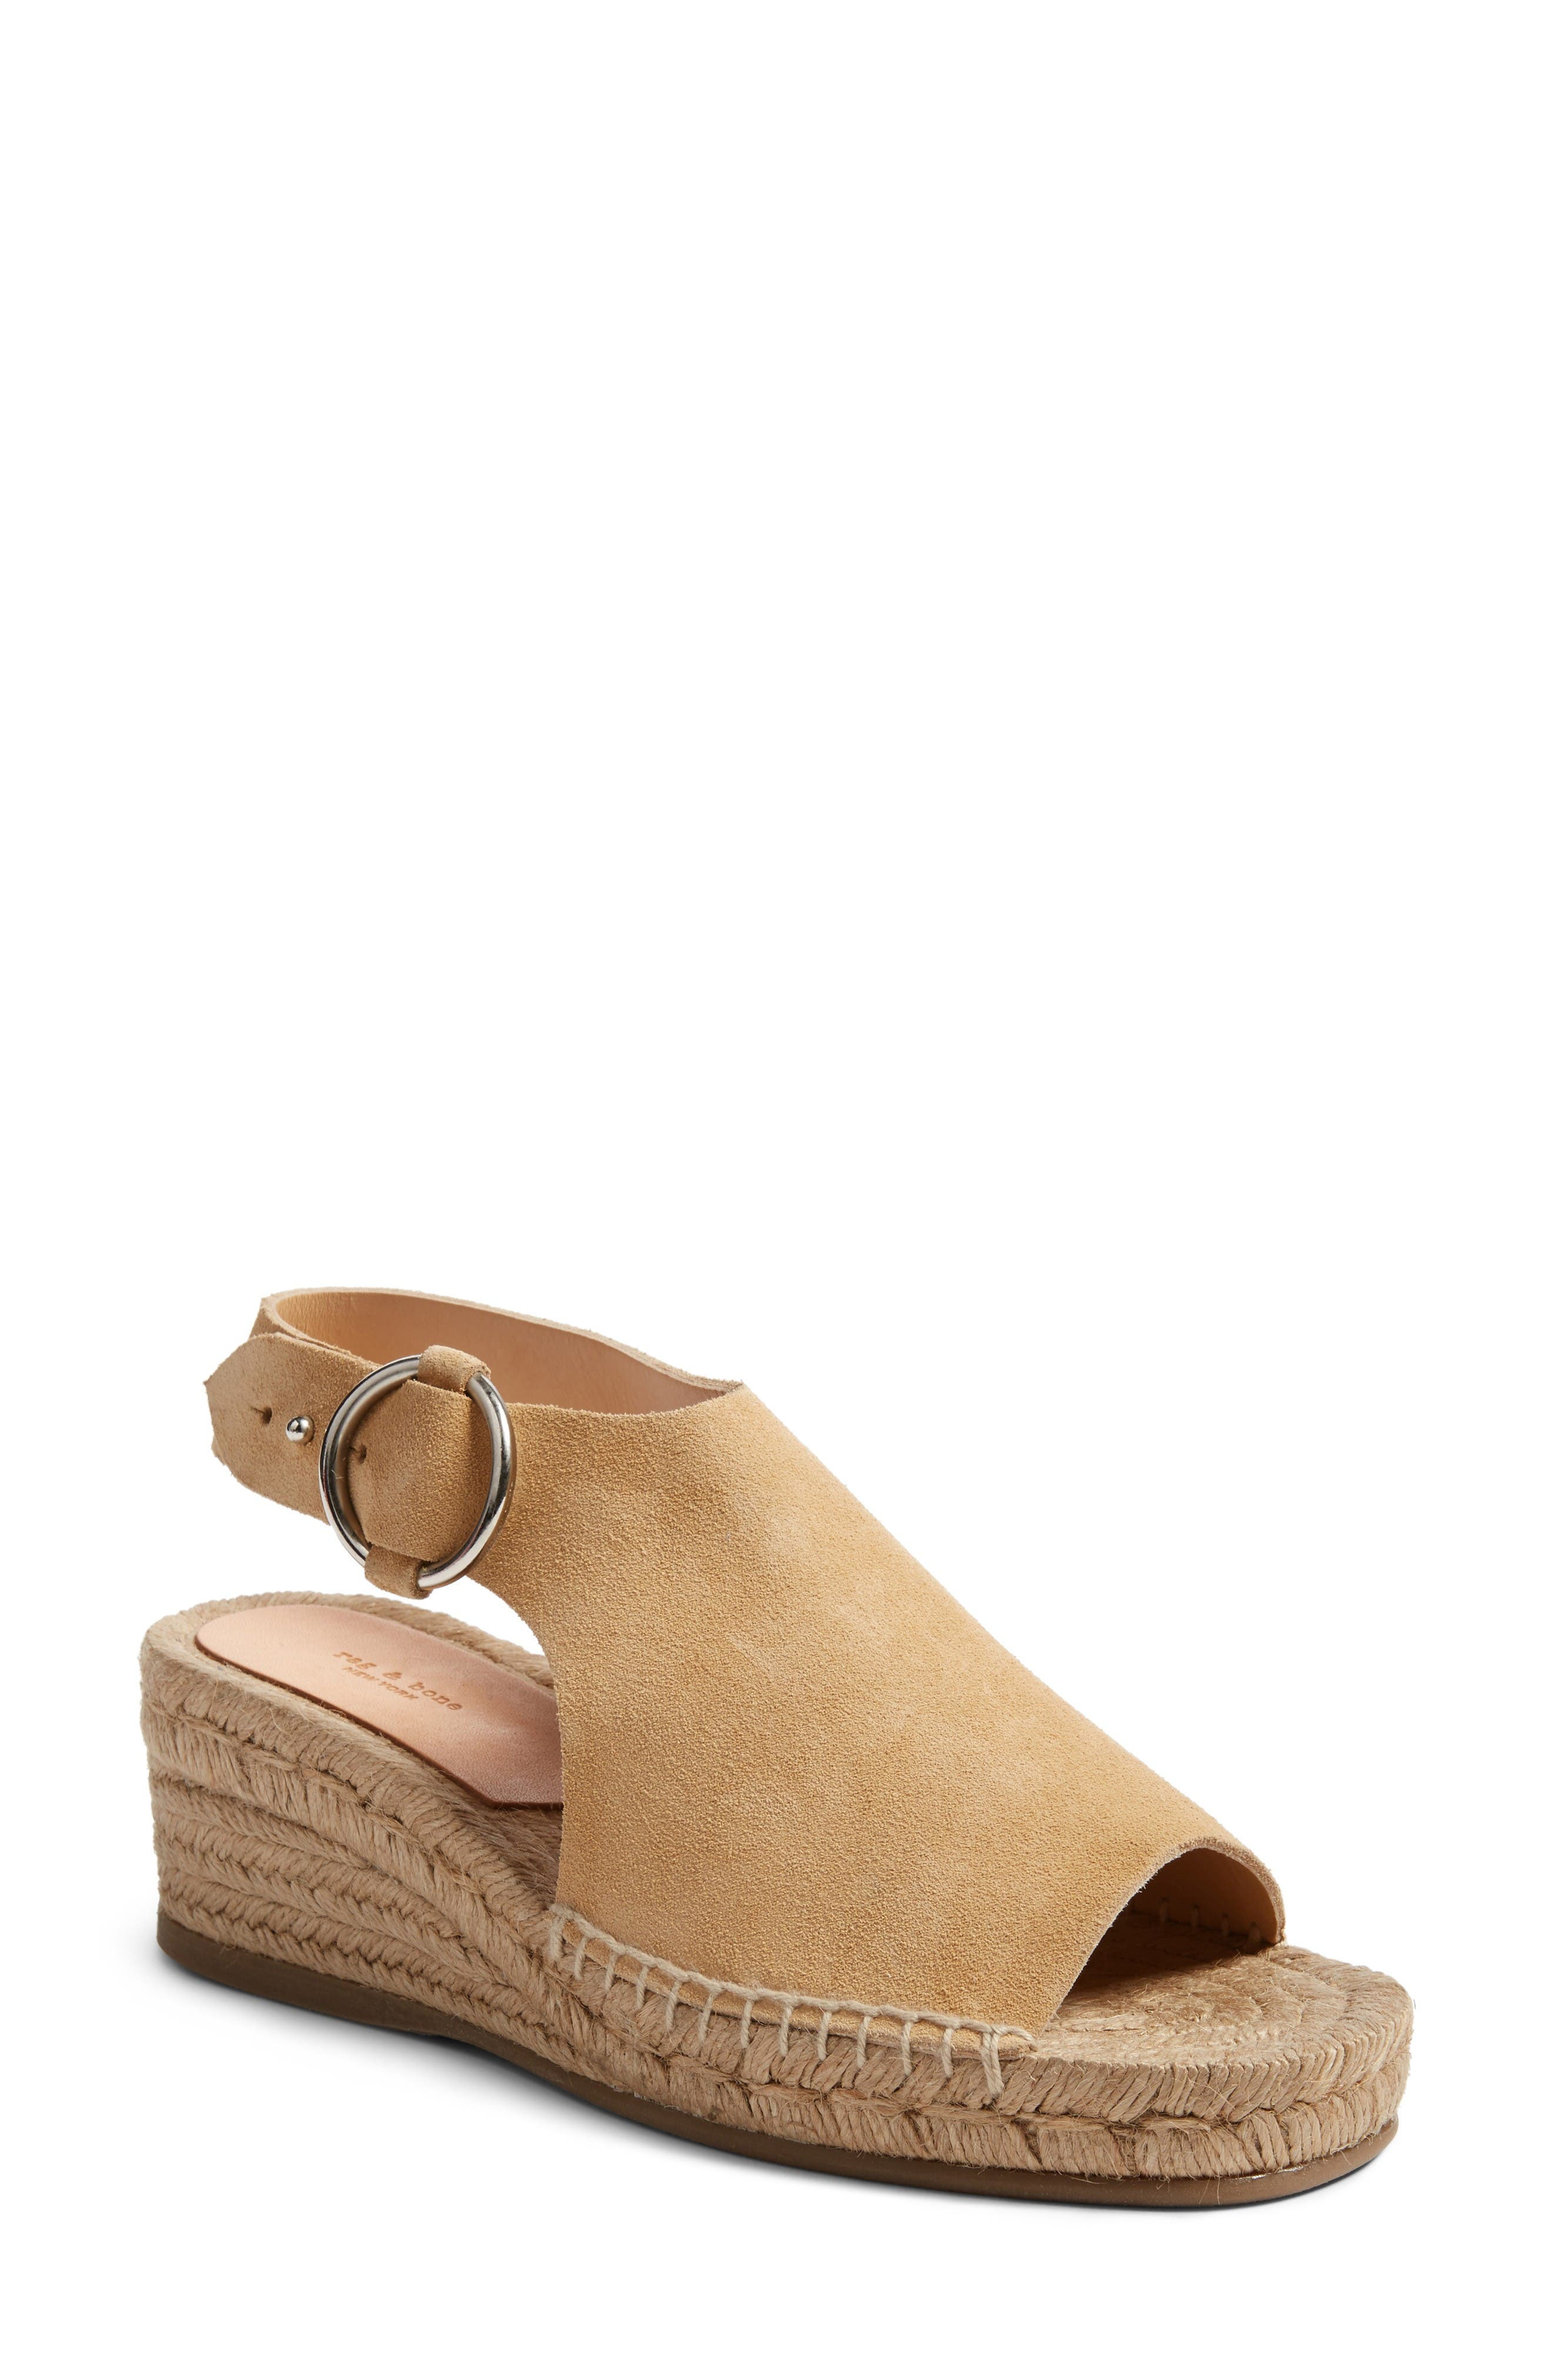 Main Image - rag & bone Calla Espadrille Wedge (Women)